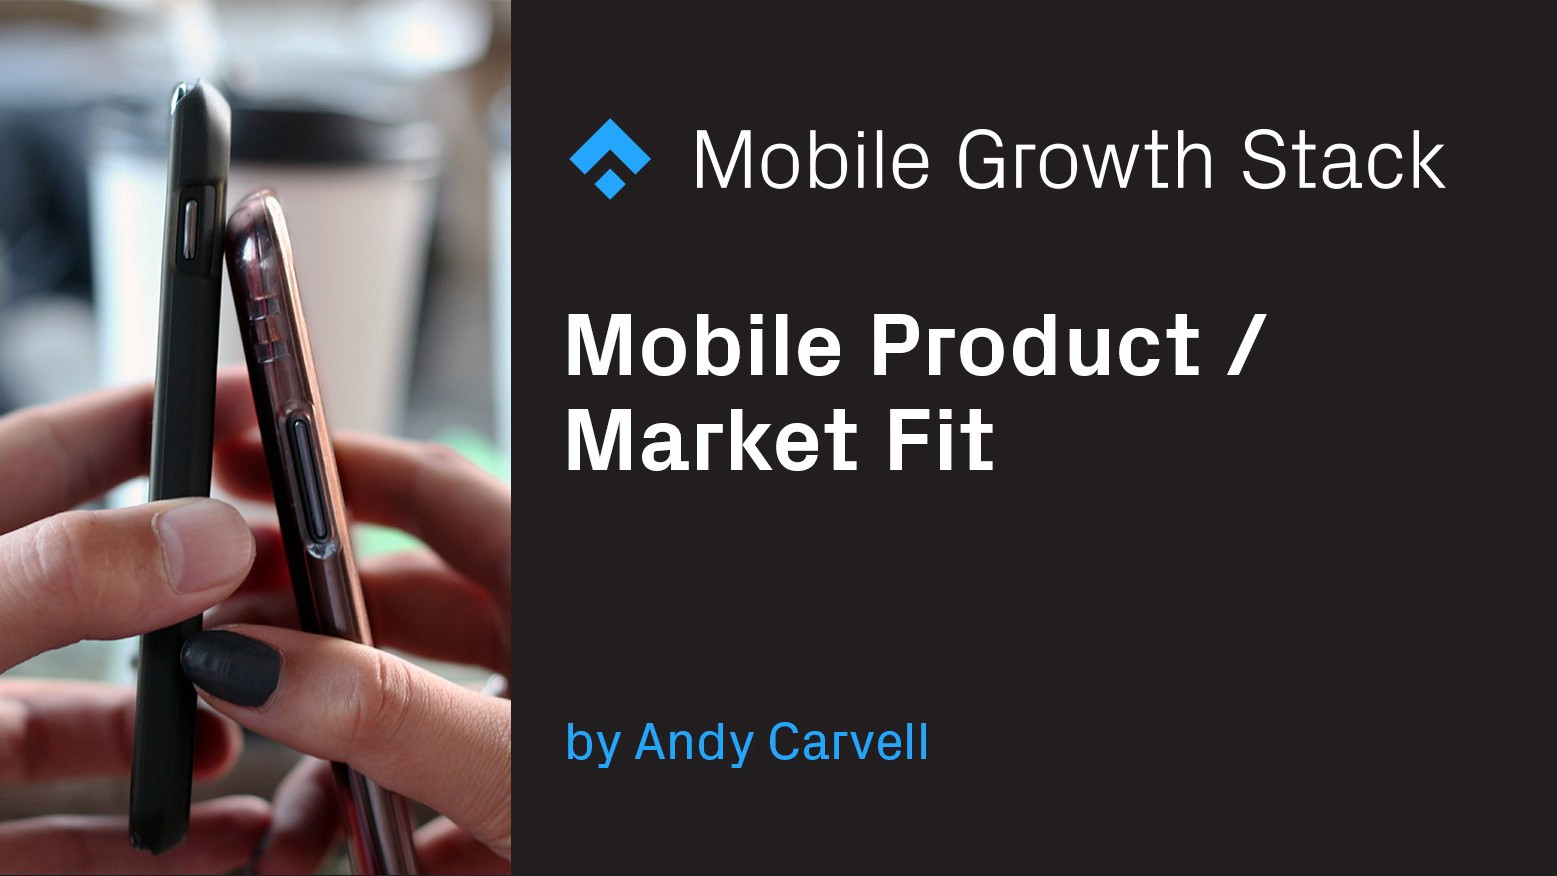 Mobile Product/Market Fit